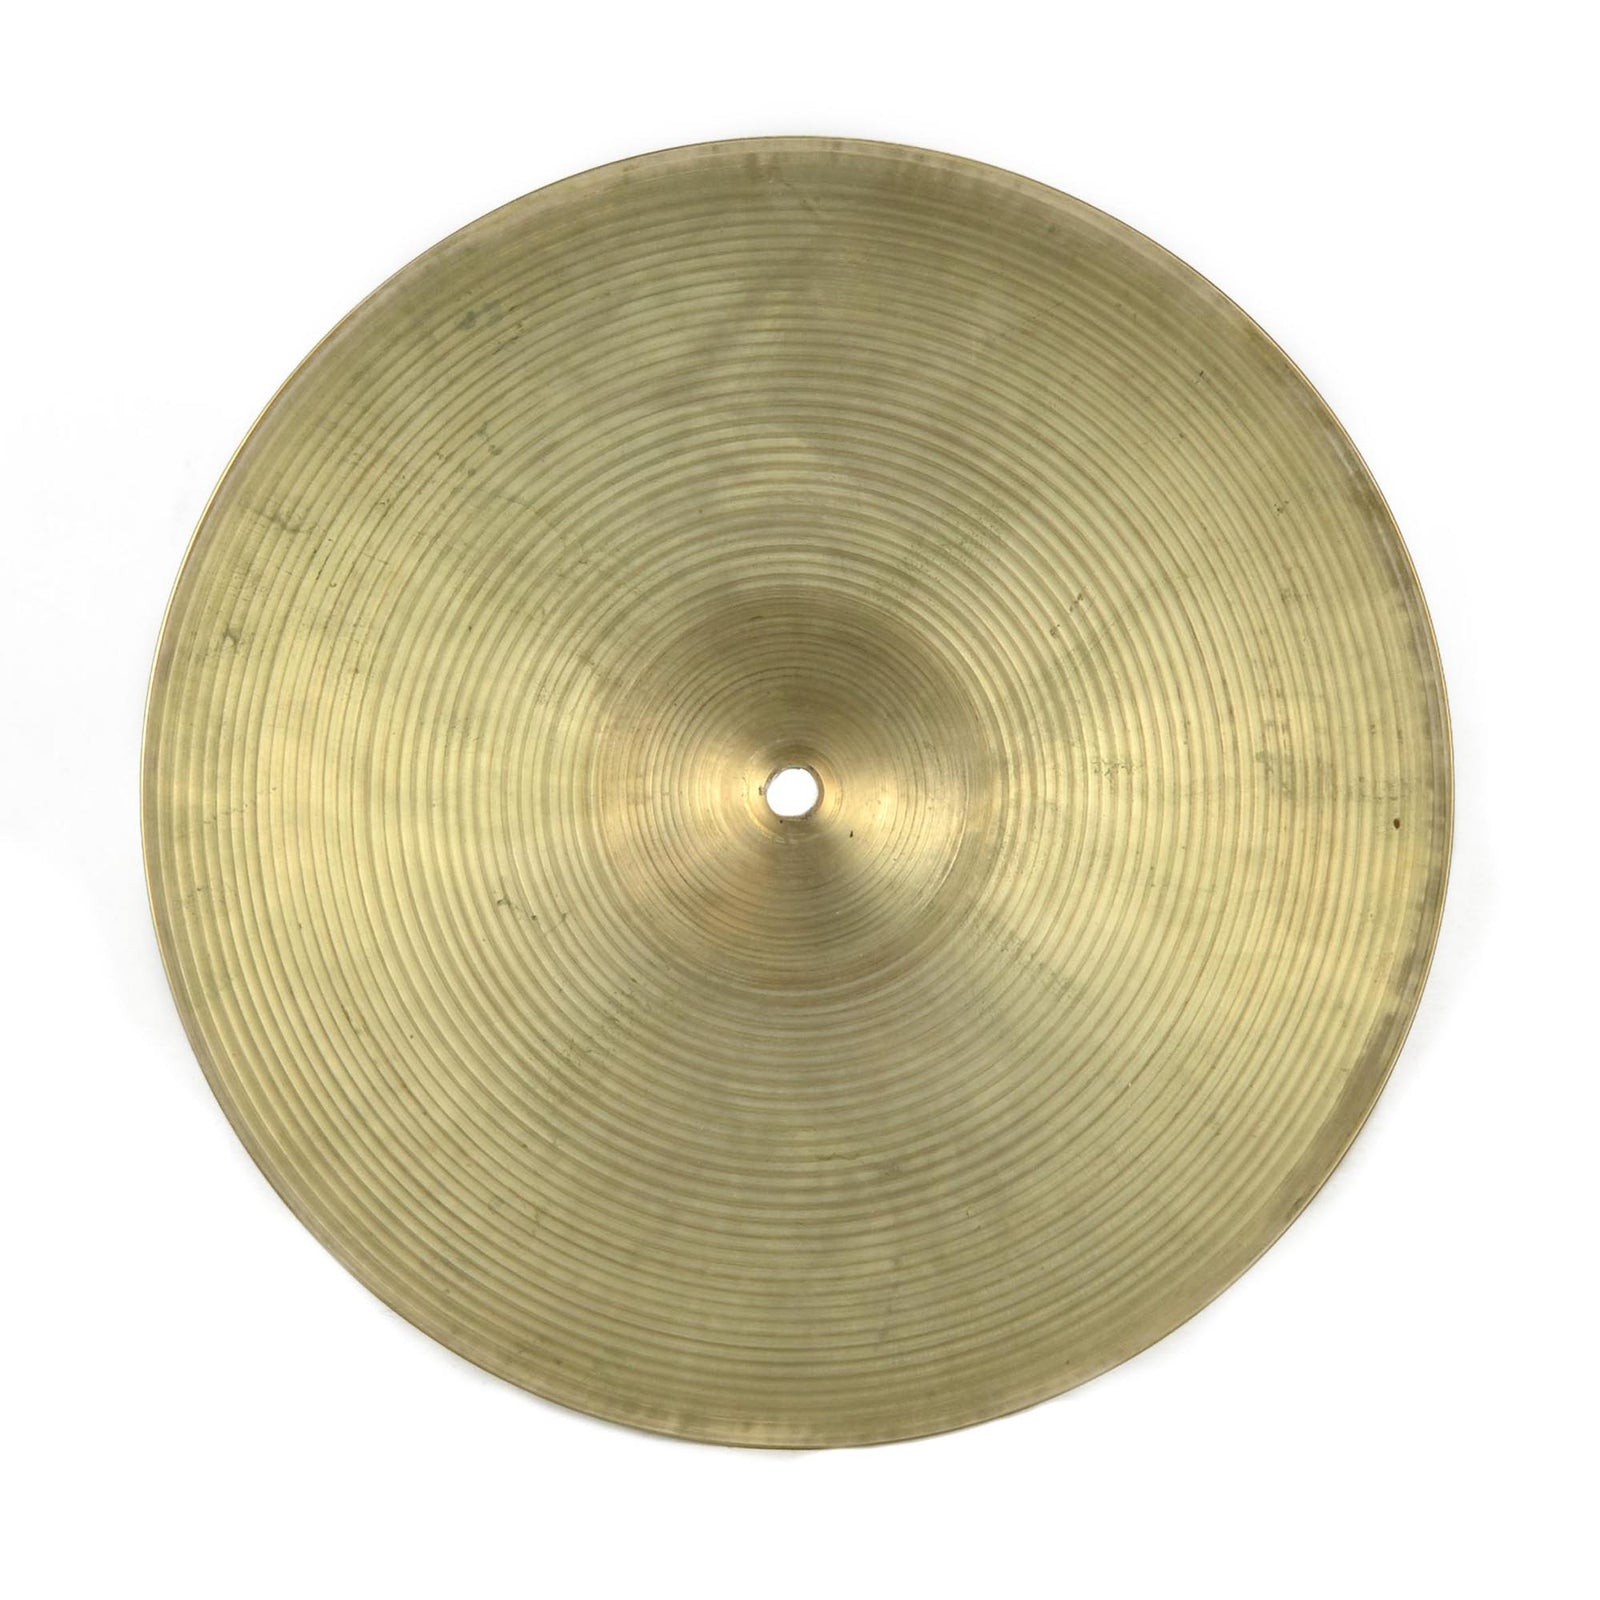 "Zildjian New Beat Hi Hat Bottom Only 14"" - Used"